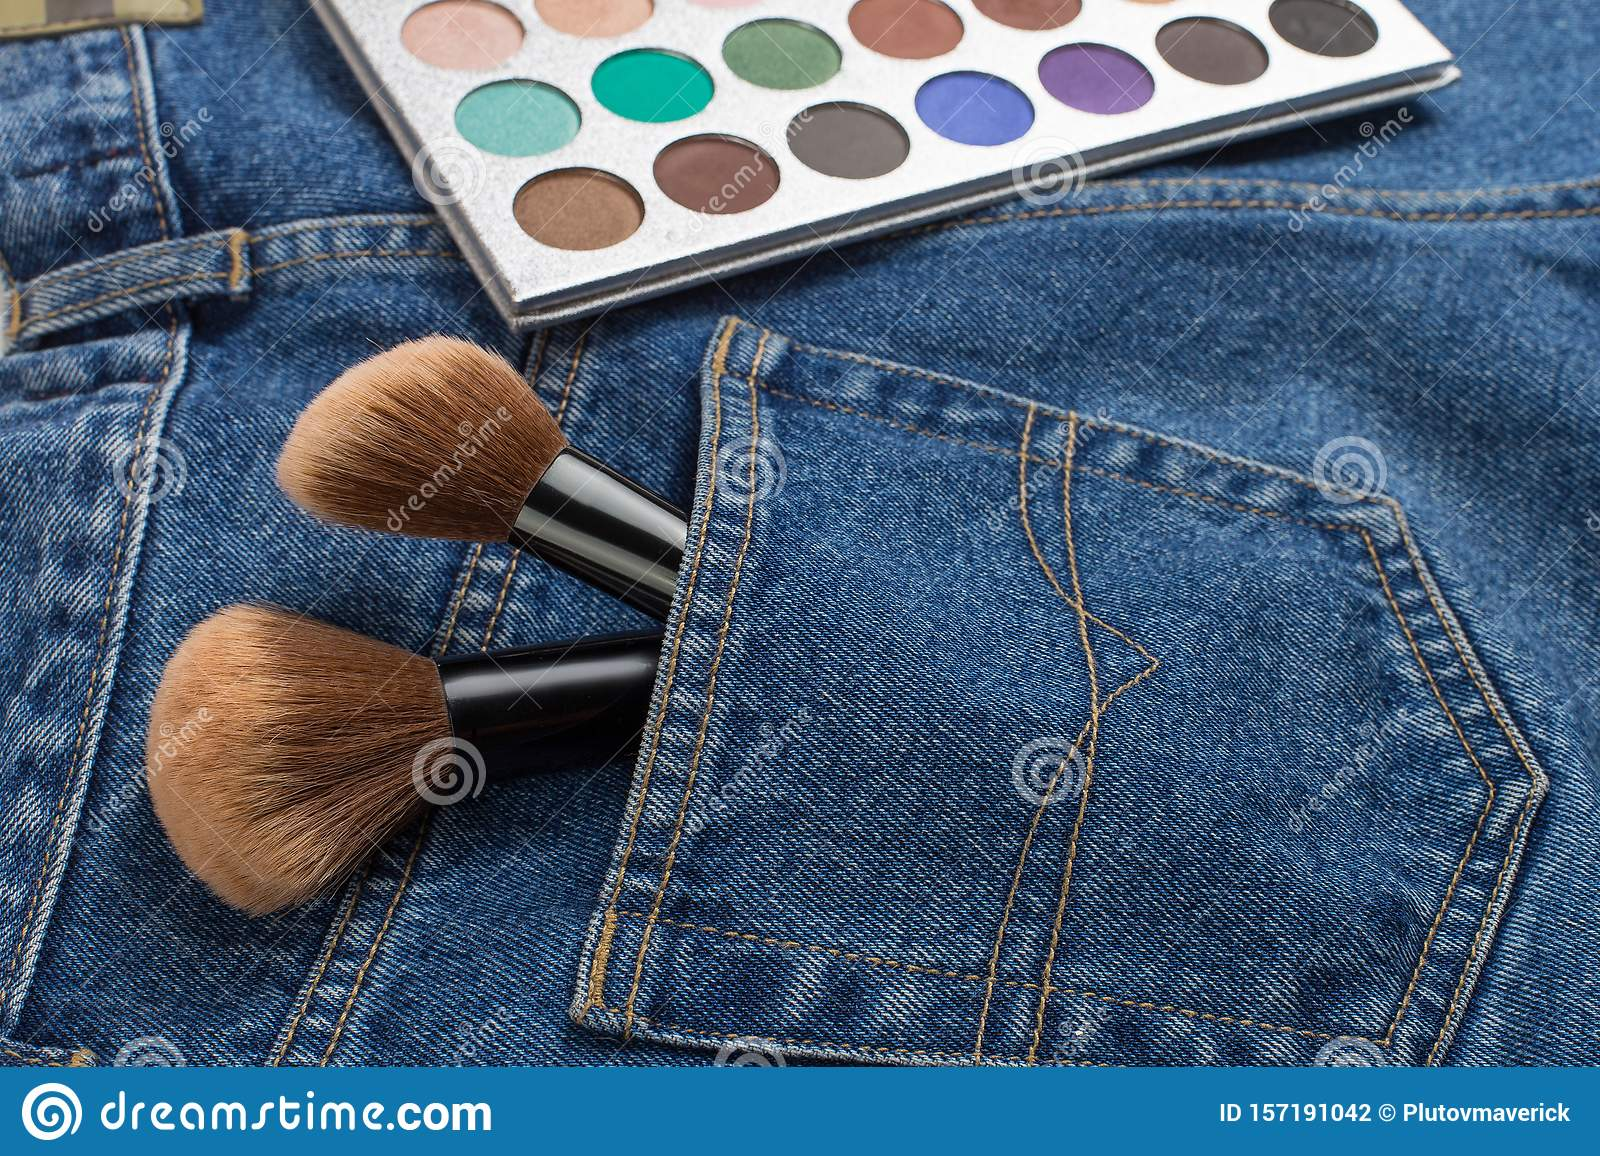 Large makeup brushes in a pocket of blue jeans. Concept, commercial work of a makeup artist, for printing business cards and